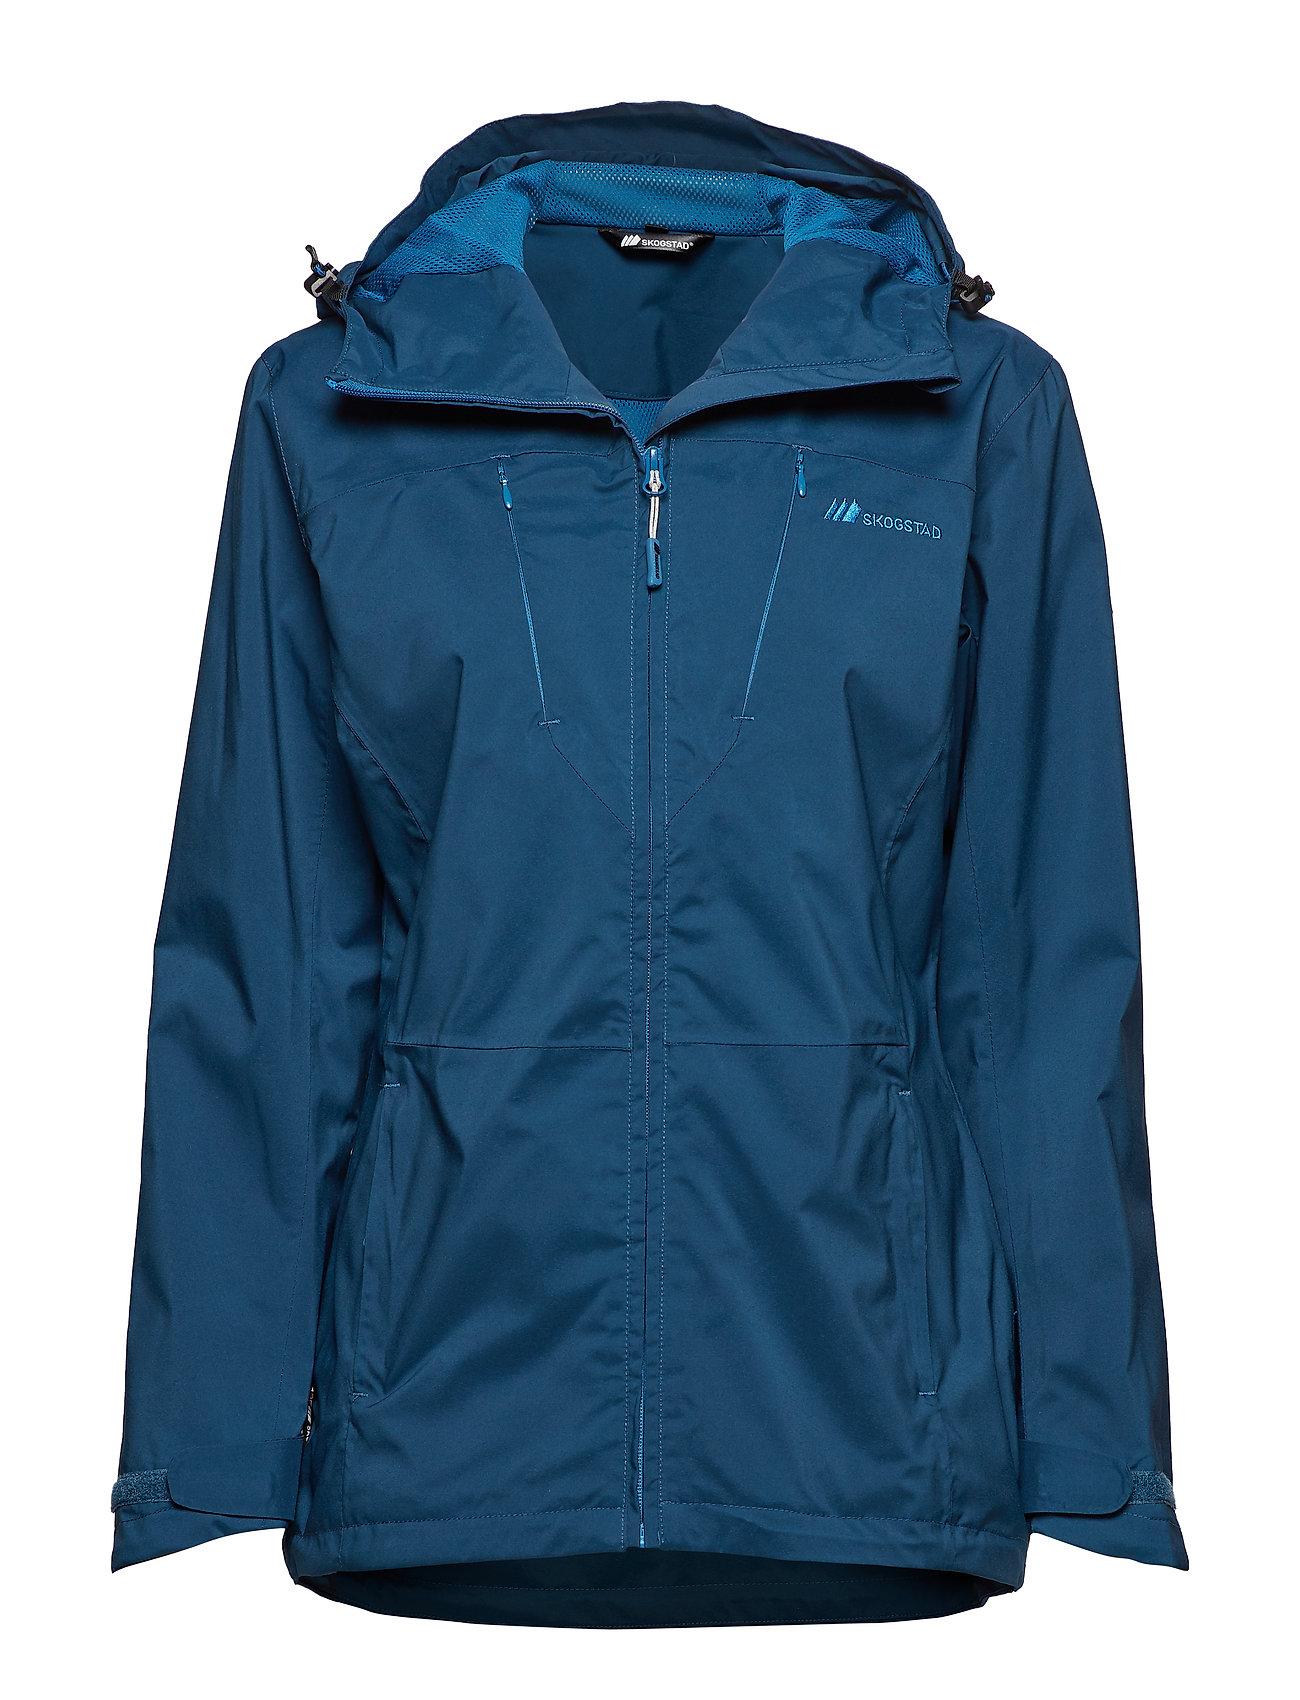 Skogstad Nausdal  2-Layer Technical Jacket - BLUE TEAL